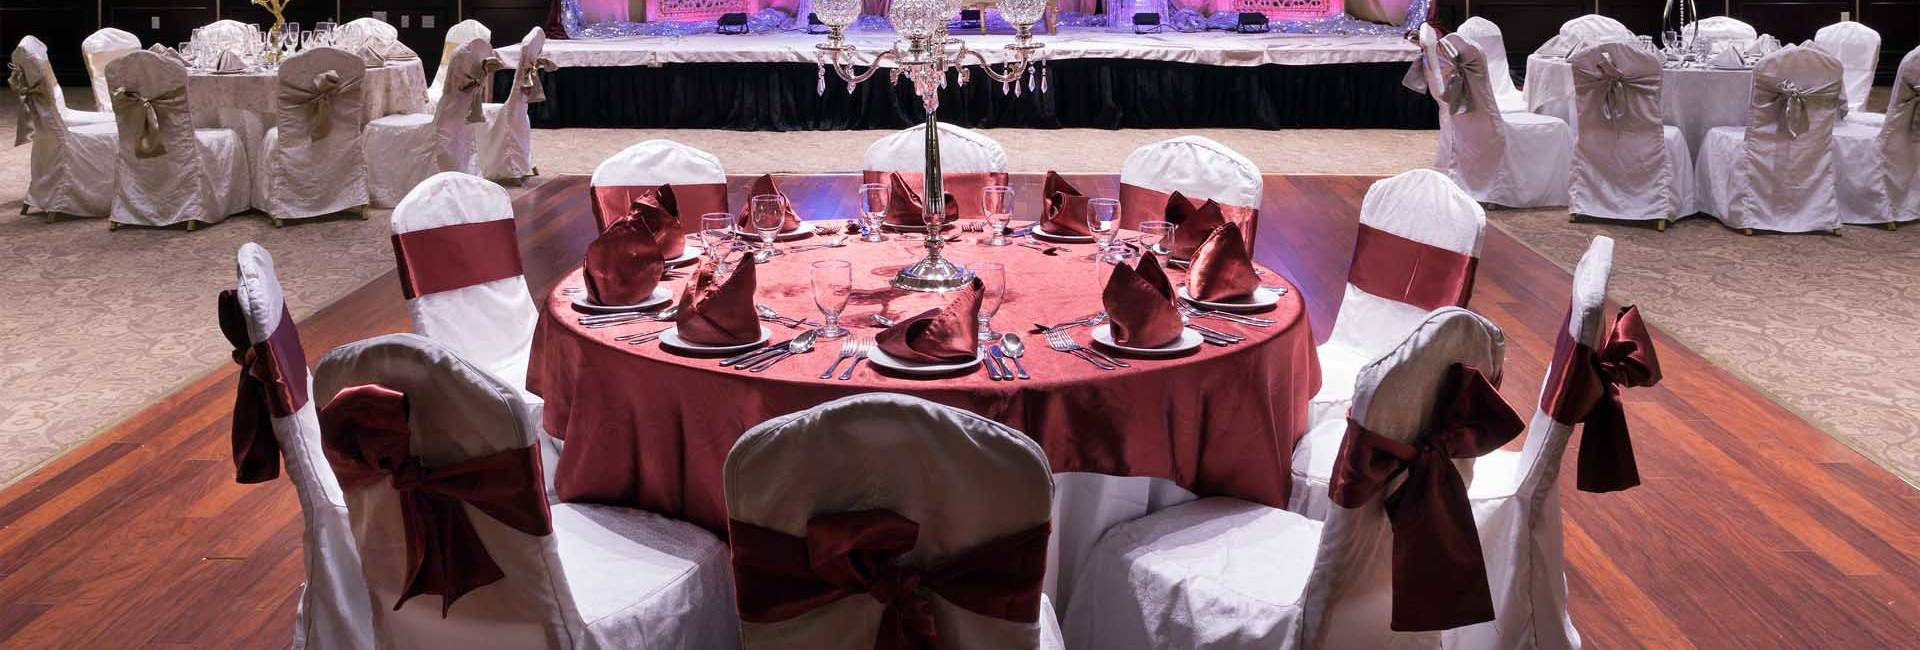 banquet halls in vaughan